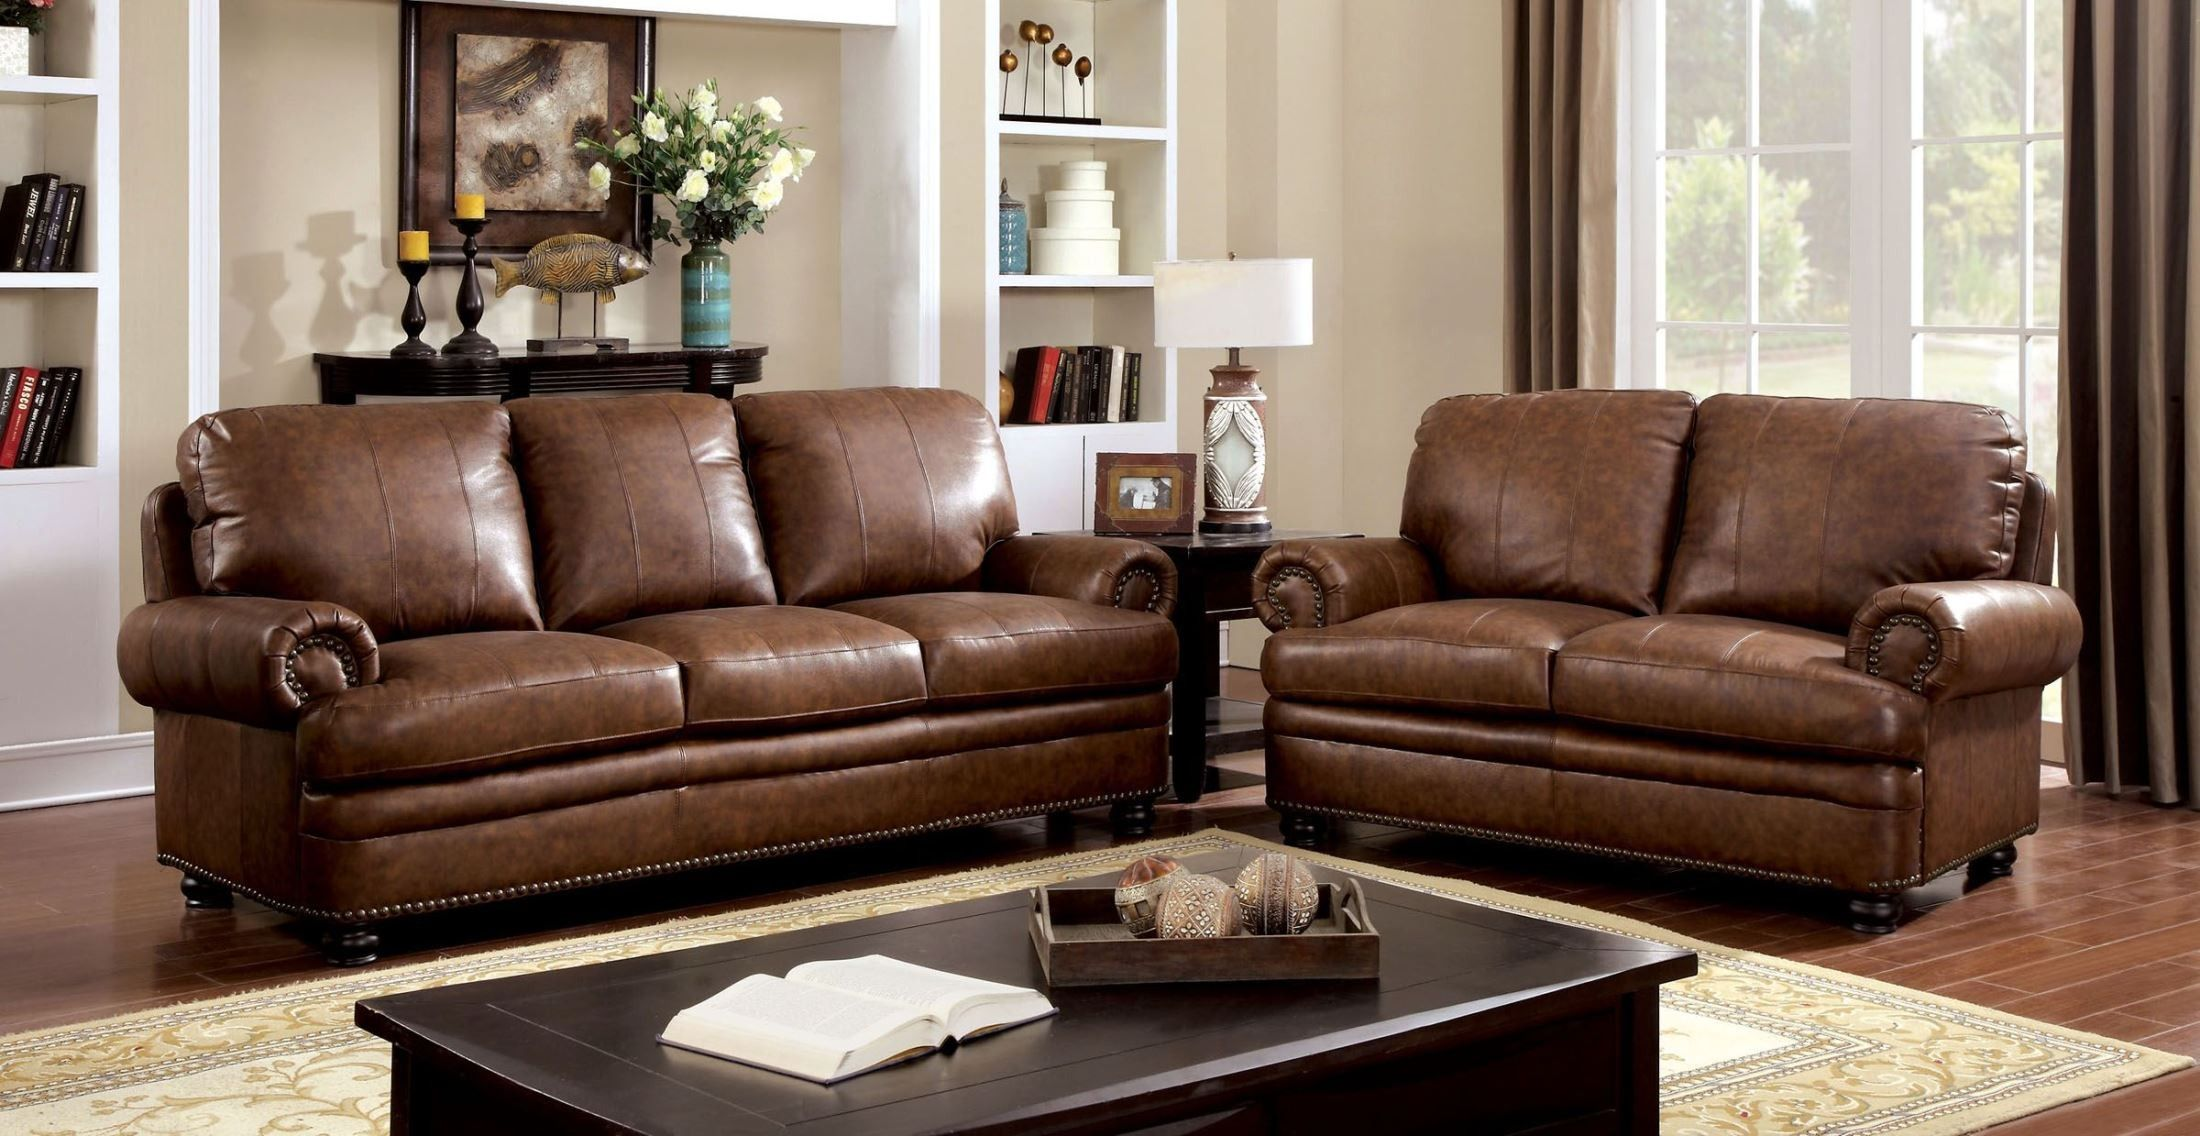 3 PC Modern Contemporary Gold Leather Sofa Loveseat Chair Living